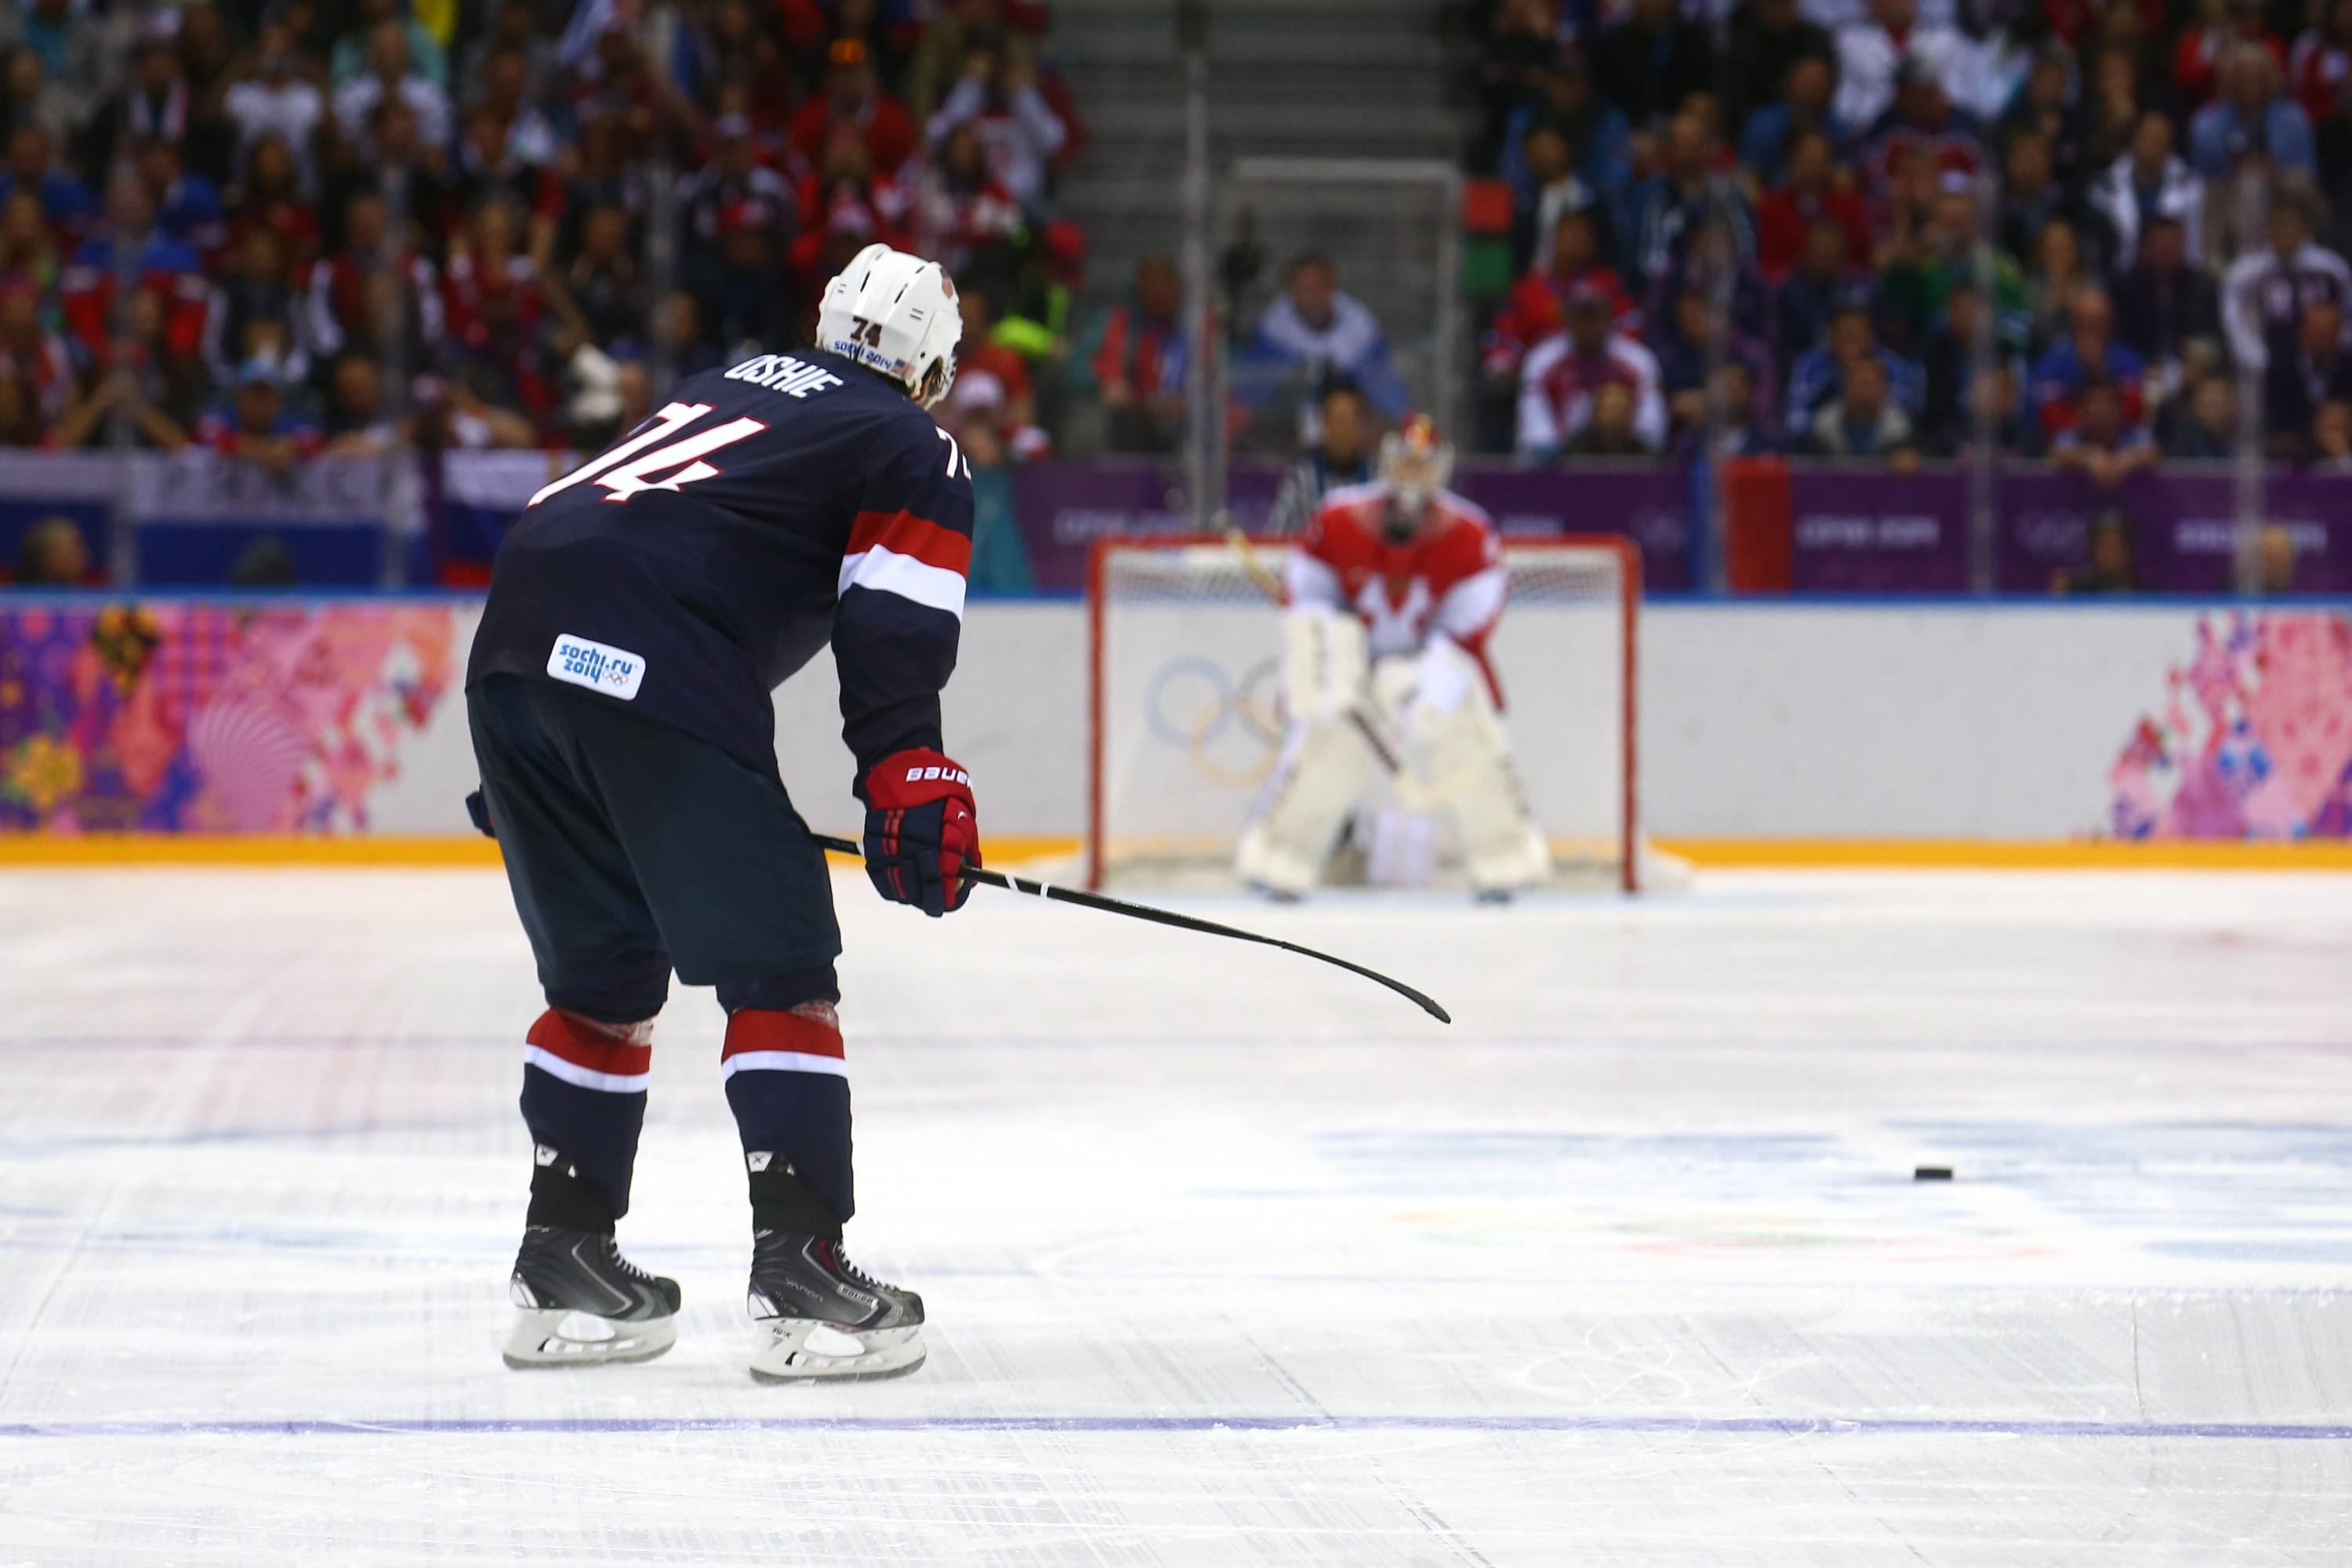 T.J. Oshie And His Legendary Olympic Shootout Vs. Russia, One Year Later